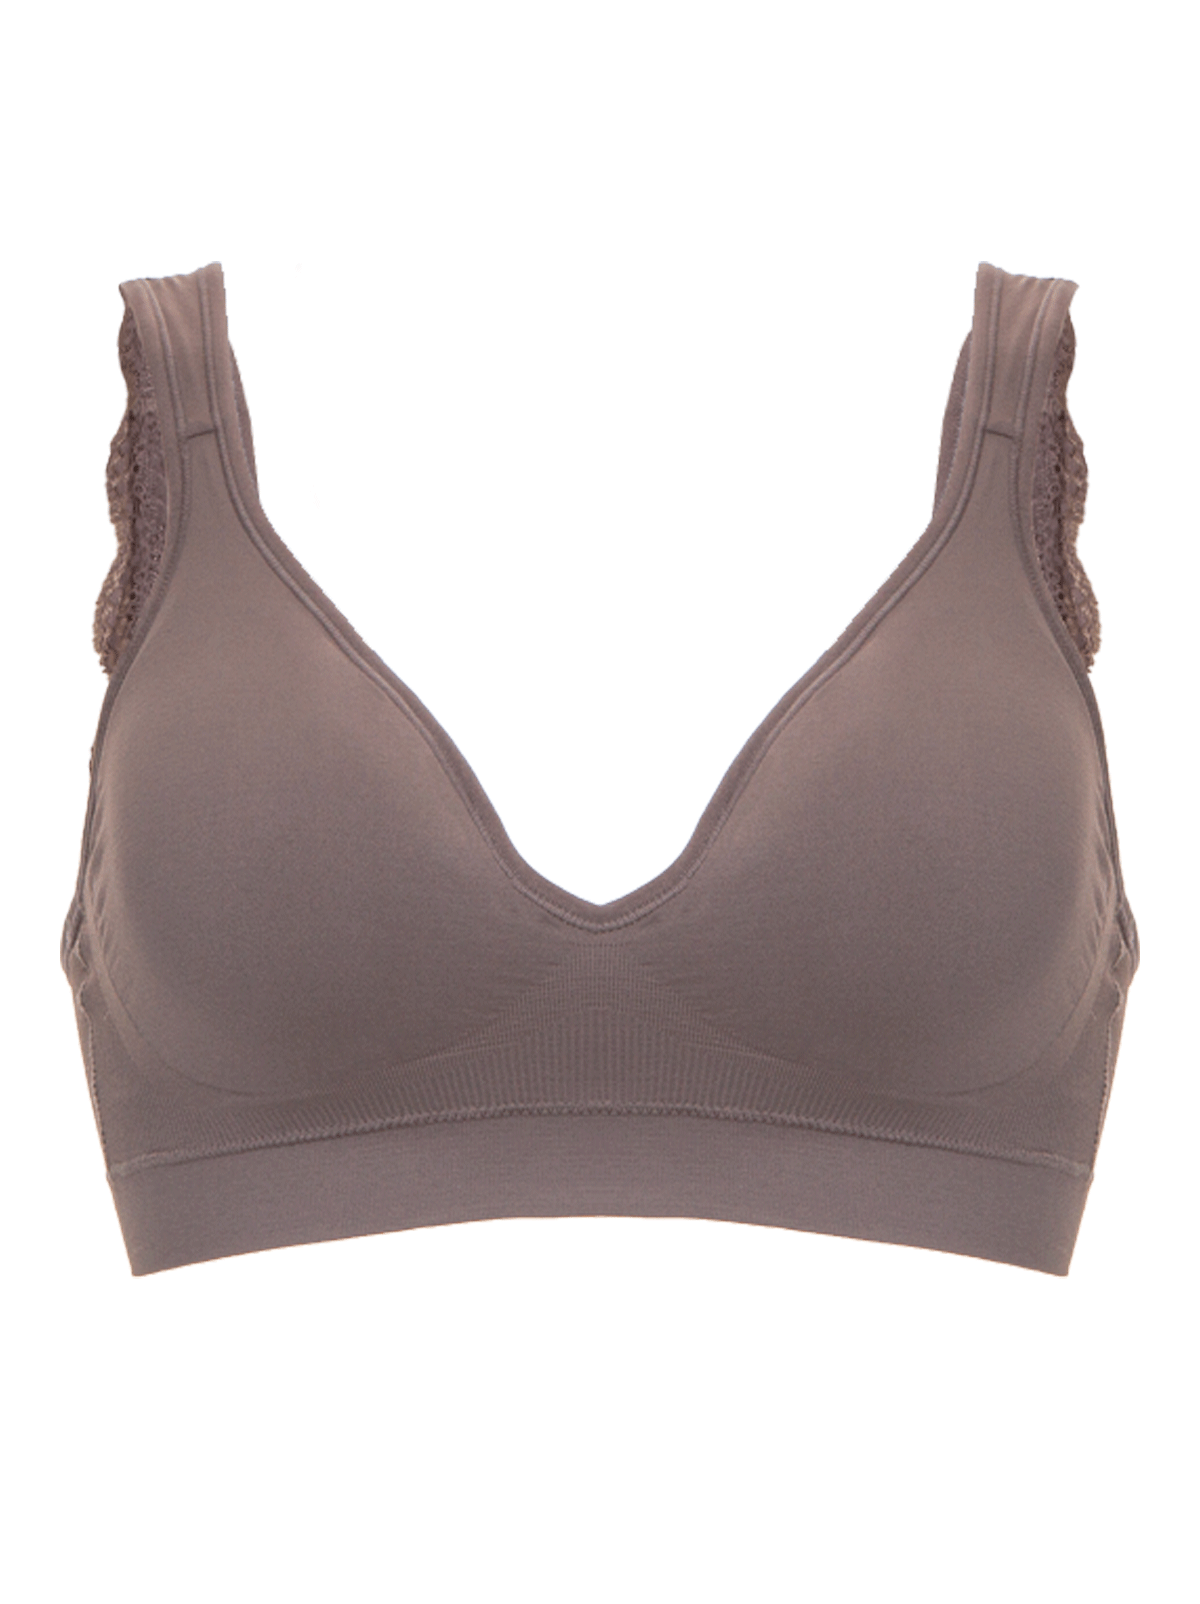 Altissima Eco-Friendly Seamless & Lace Bralette